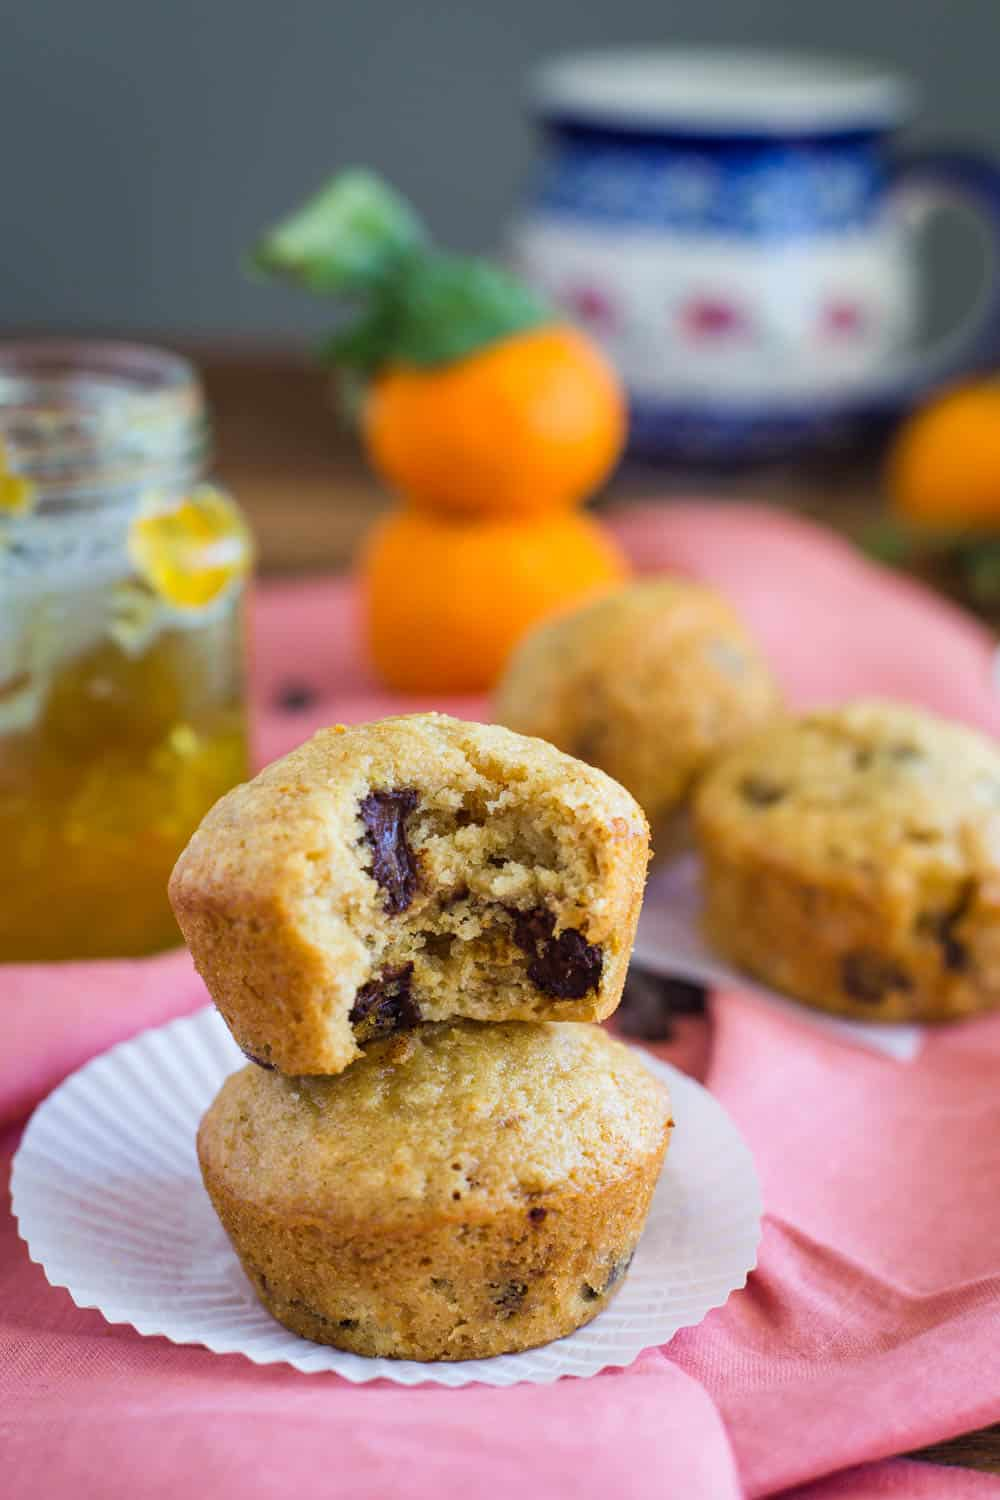 Orange Marmalade Vegan Muffins with chocolate chips- SO yummy and simple to make!